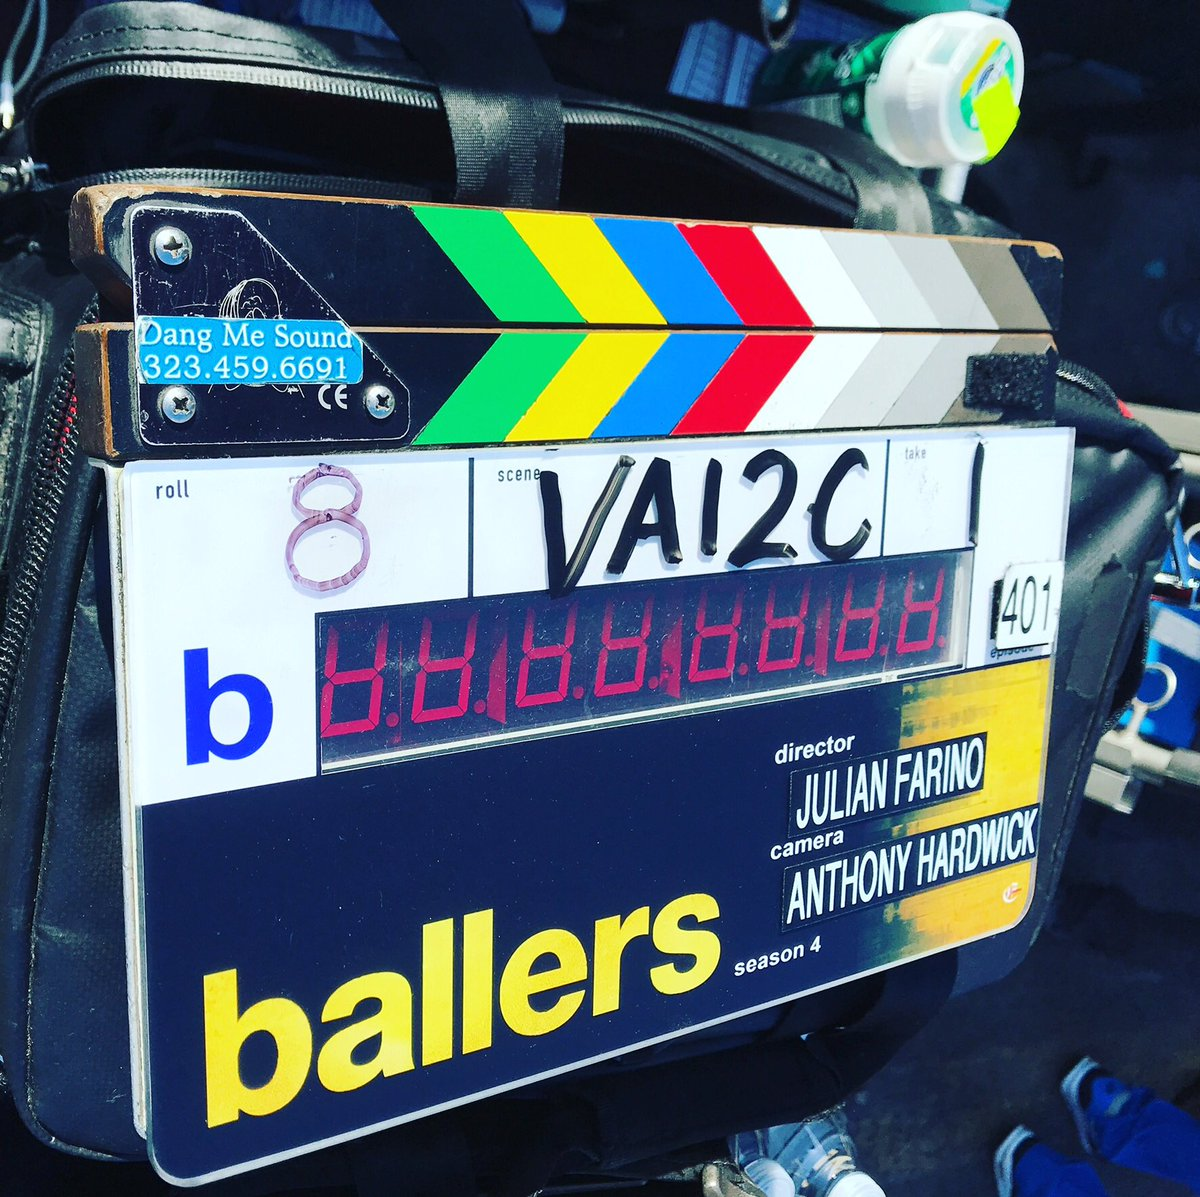 Back for Season 4! #ballers #losangeles #setlife🎥 @BallersHBO https://t.co/KYcUUqy9kx